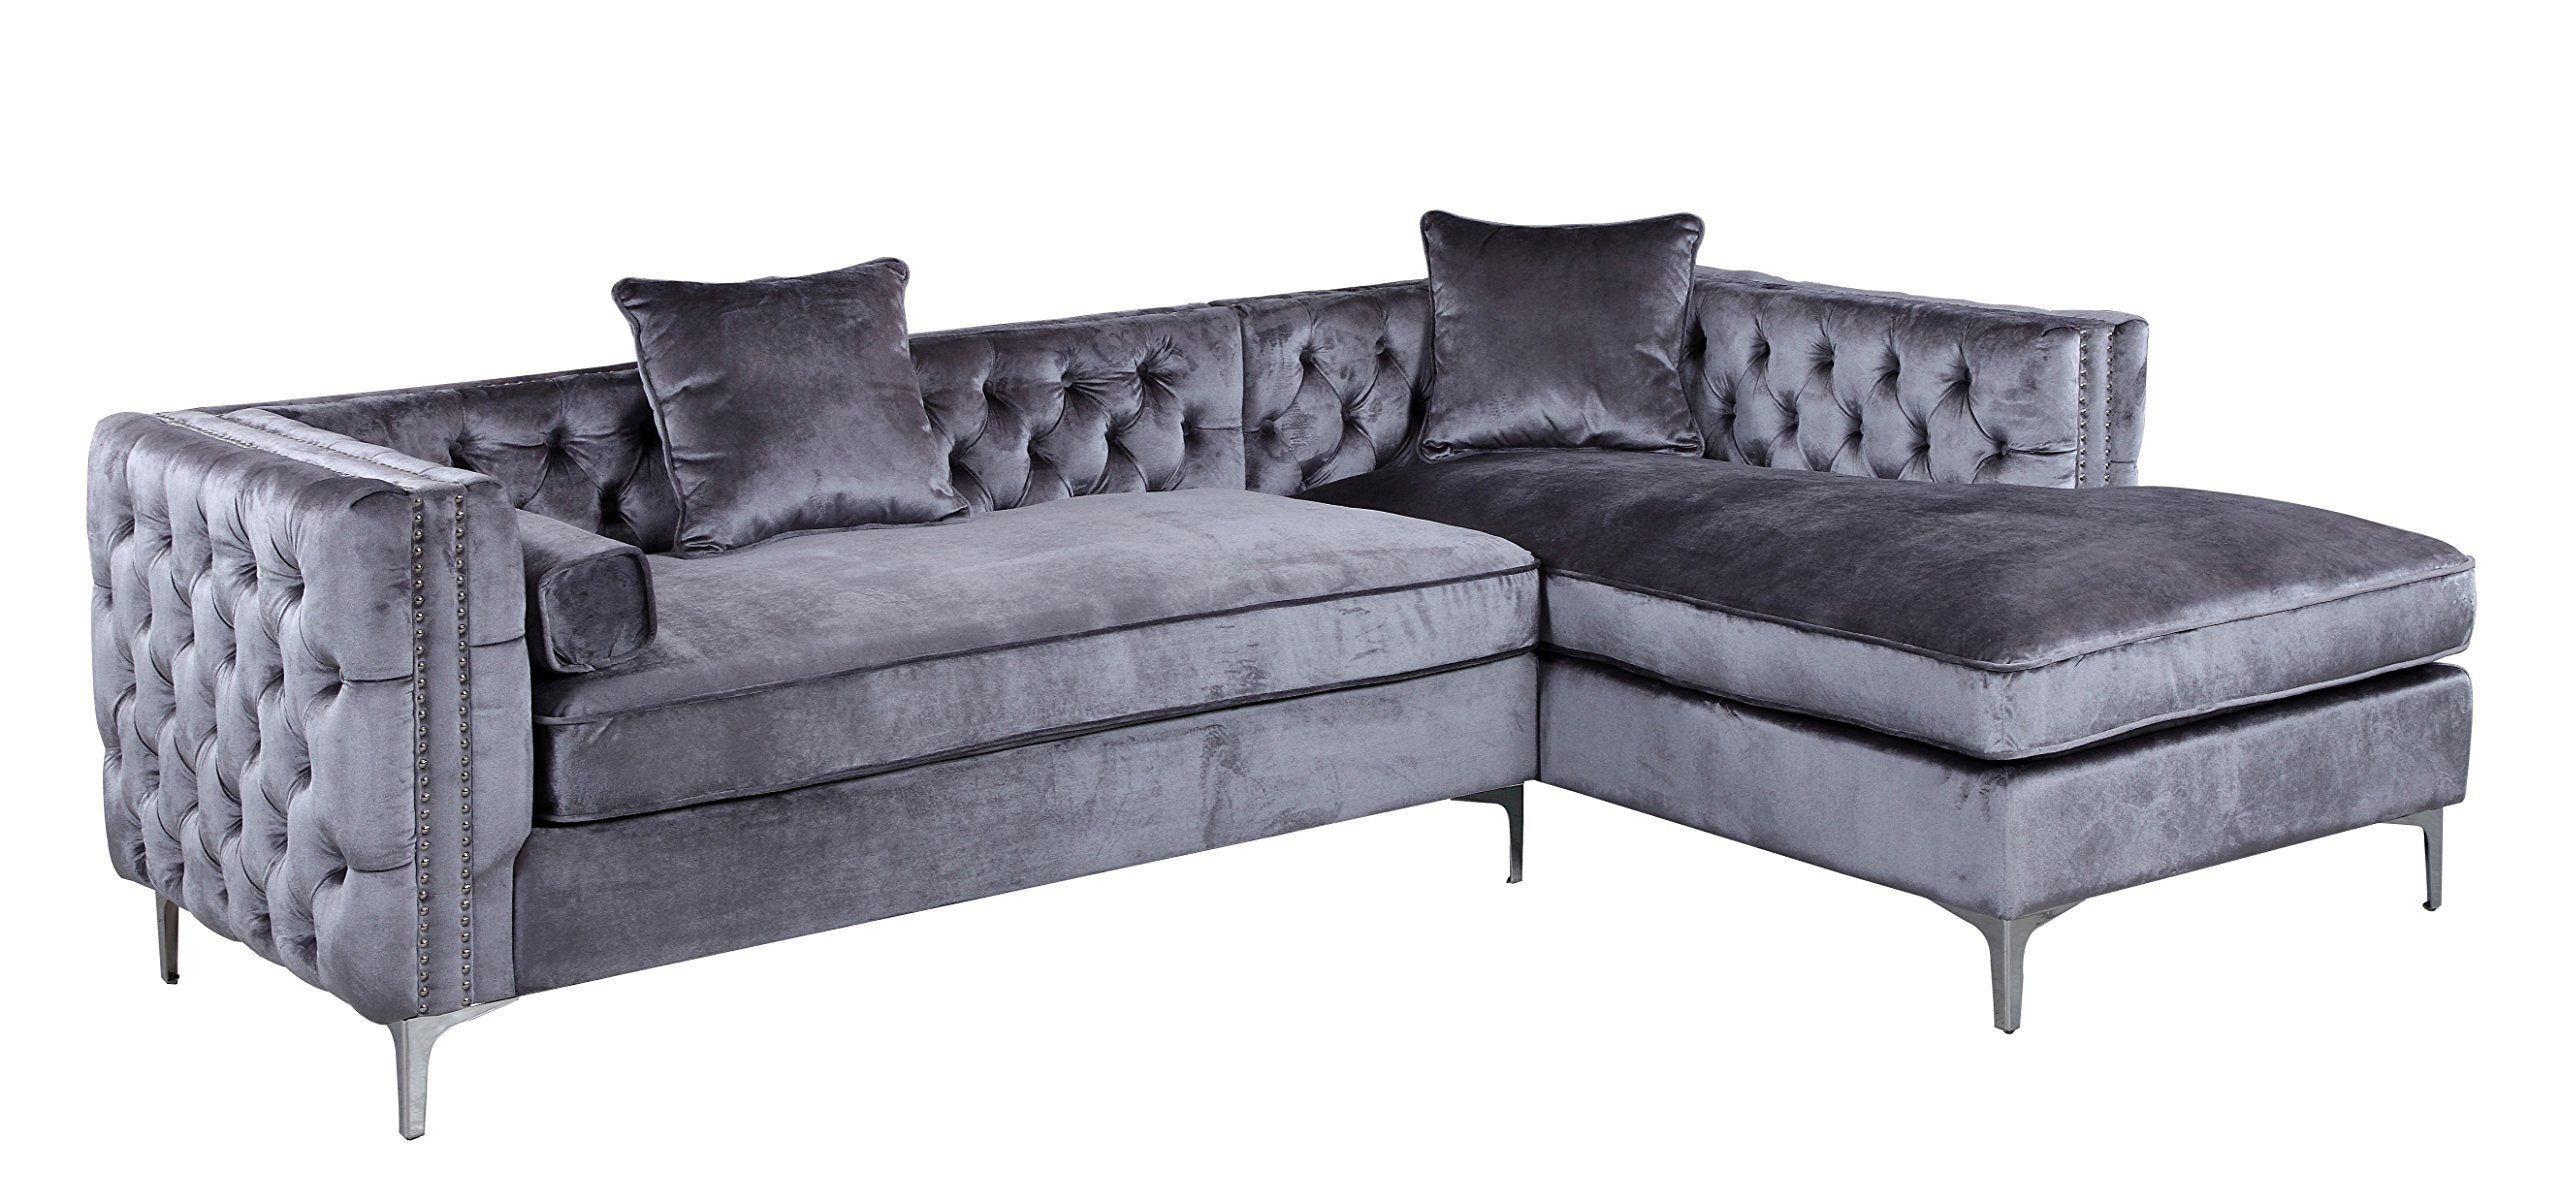 Iconic Home Da Vinci Tufted Silver Trim Grey Velvet Right Facing Sectional Sofa With Silver Tone Meta Velvet Sectional Sectional Sofa Couch Grey Sectional Sofa